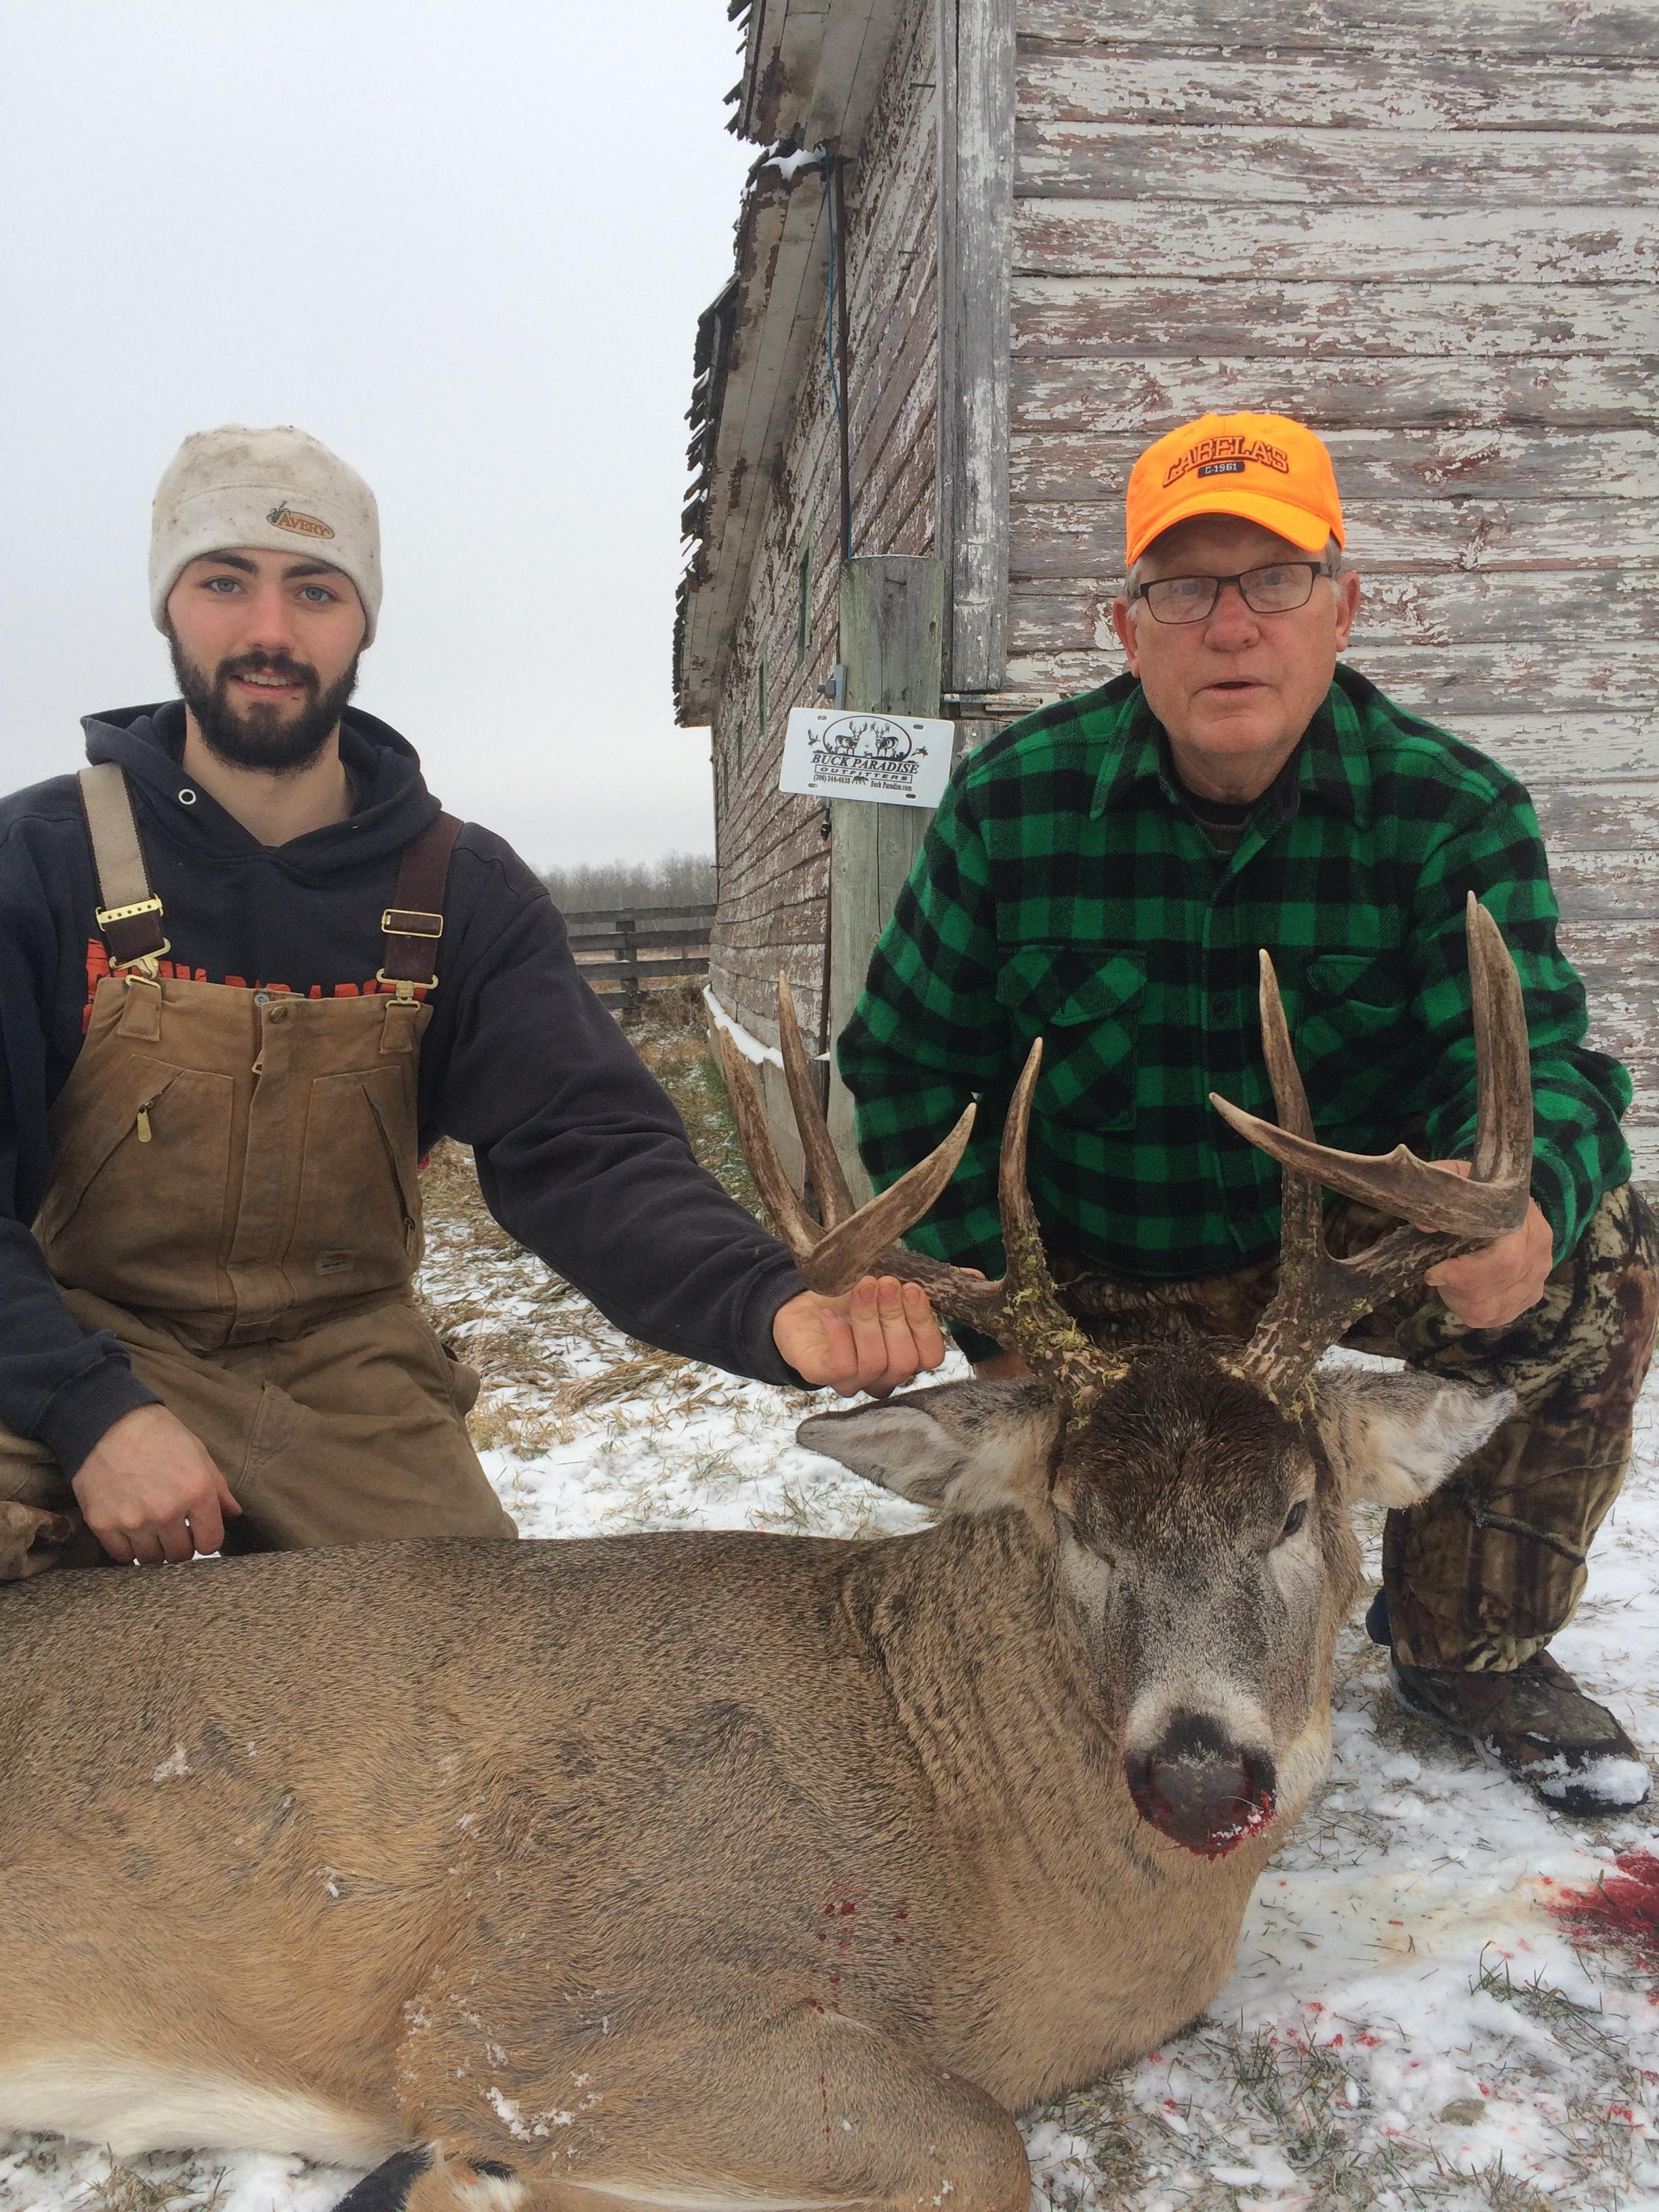 Guide Garet with Hunter David Hussel